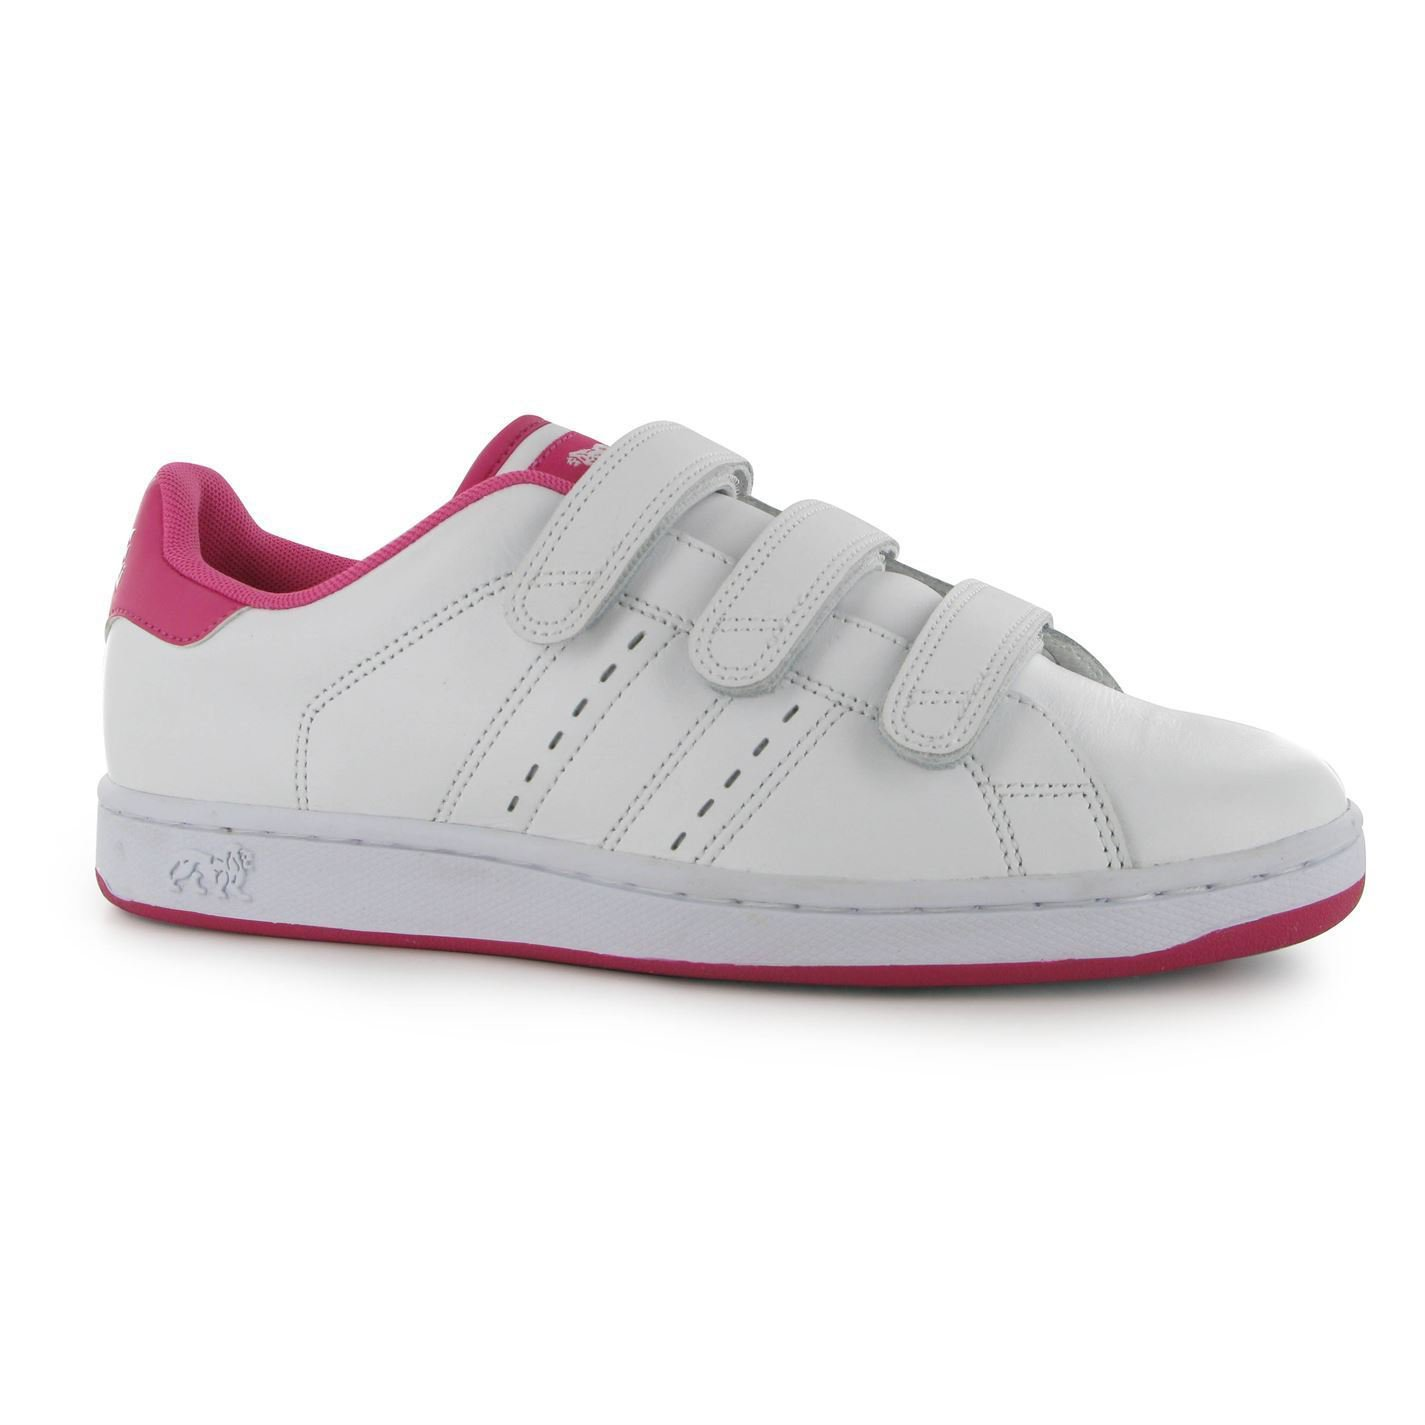 Lonsdale Womens Leyton Ladies Trainers Sport Shoes Leather Upper Casual Footwear